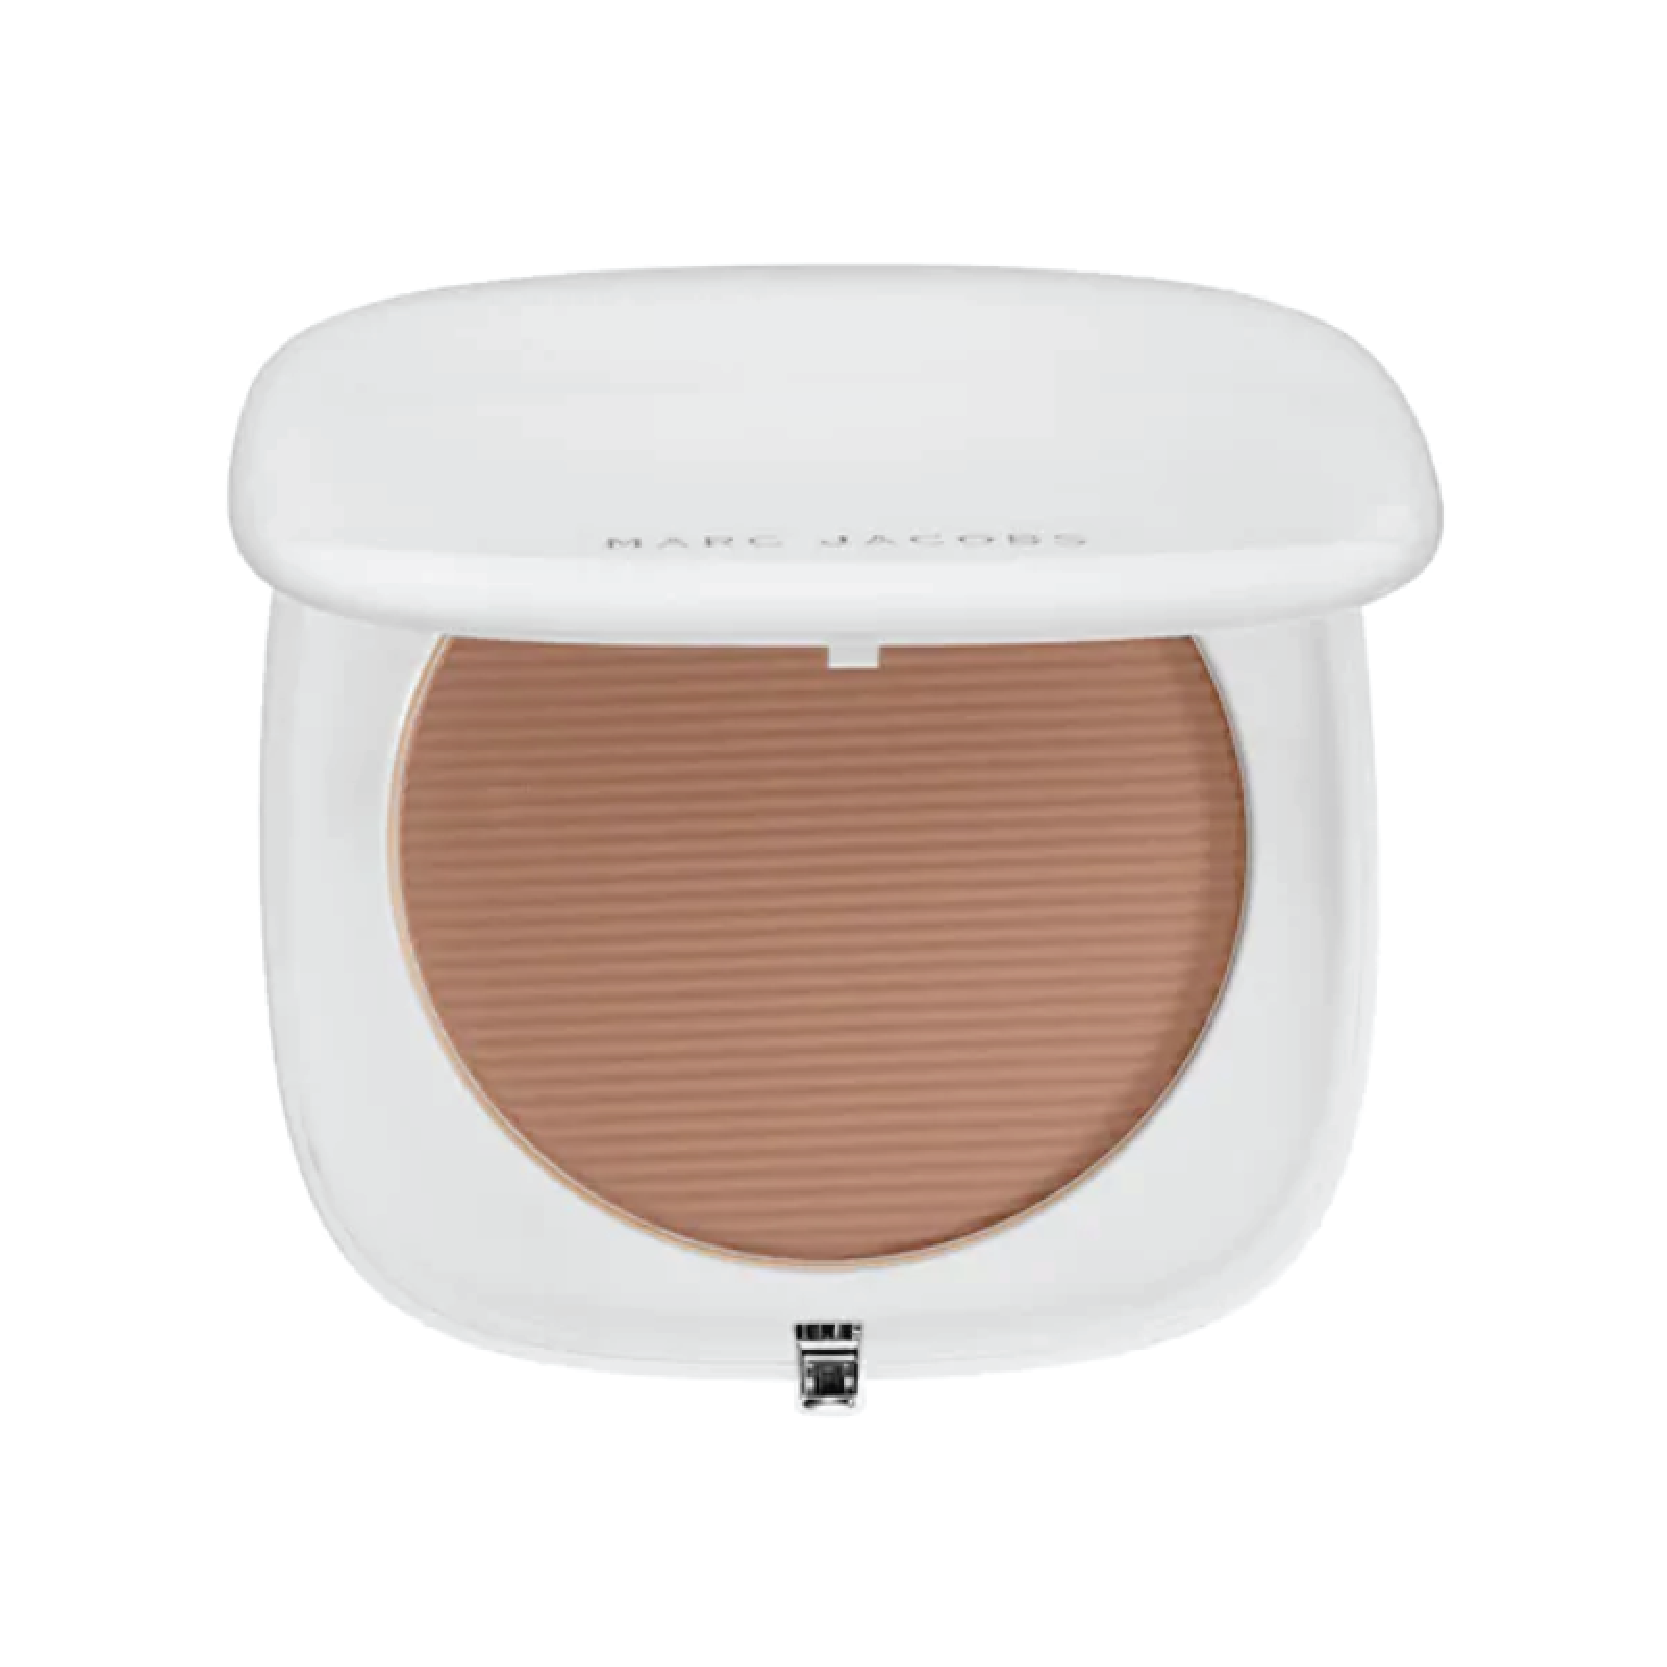 Marc Jacobs O!Mega Bronzer Coconut Perfect Tan - $49 at SephoraThis bronzer made so many waves when it launched this summer that they brought it back for regular line. It's a perfect introduction to luxury cosmetics.